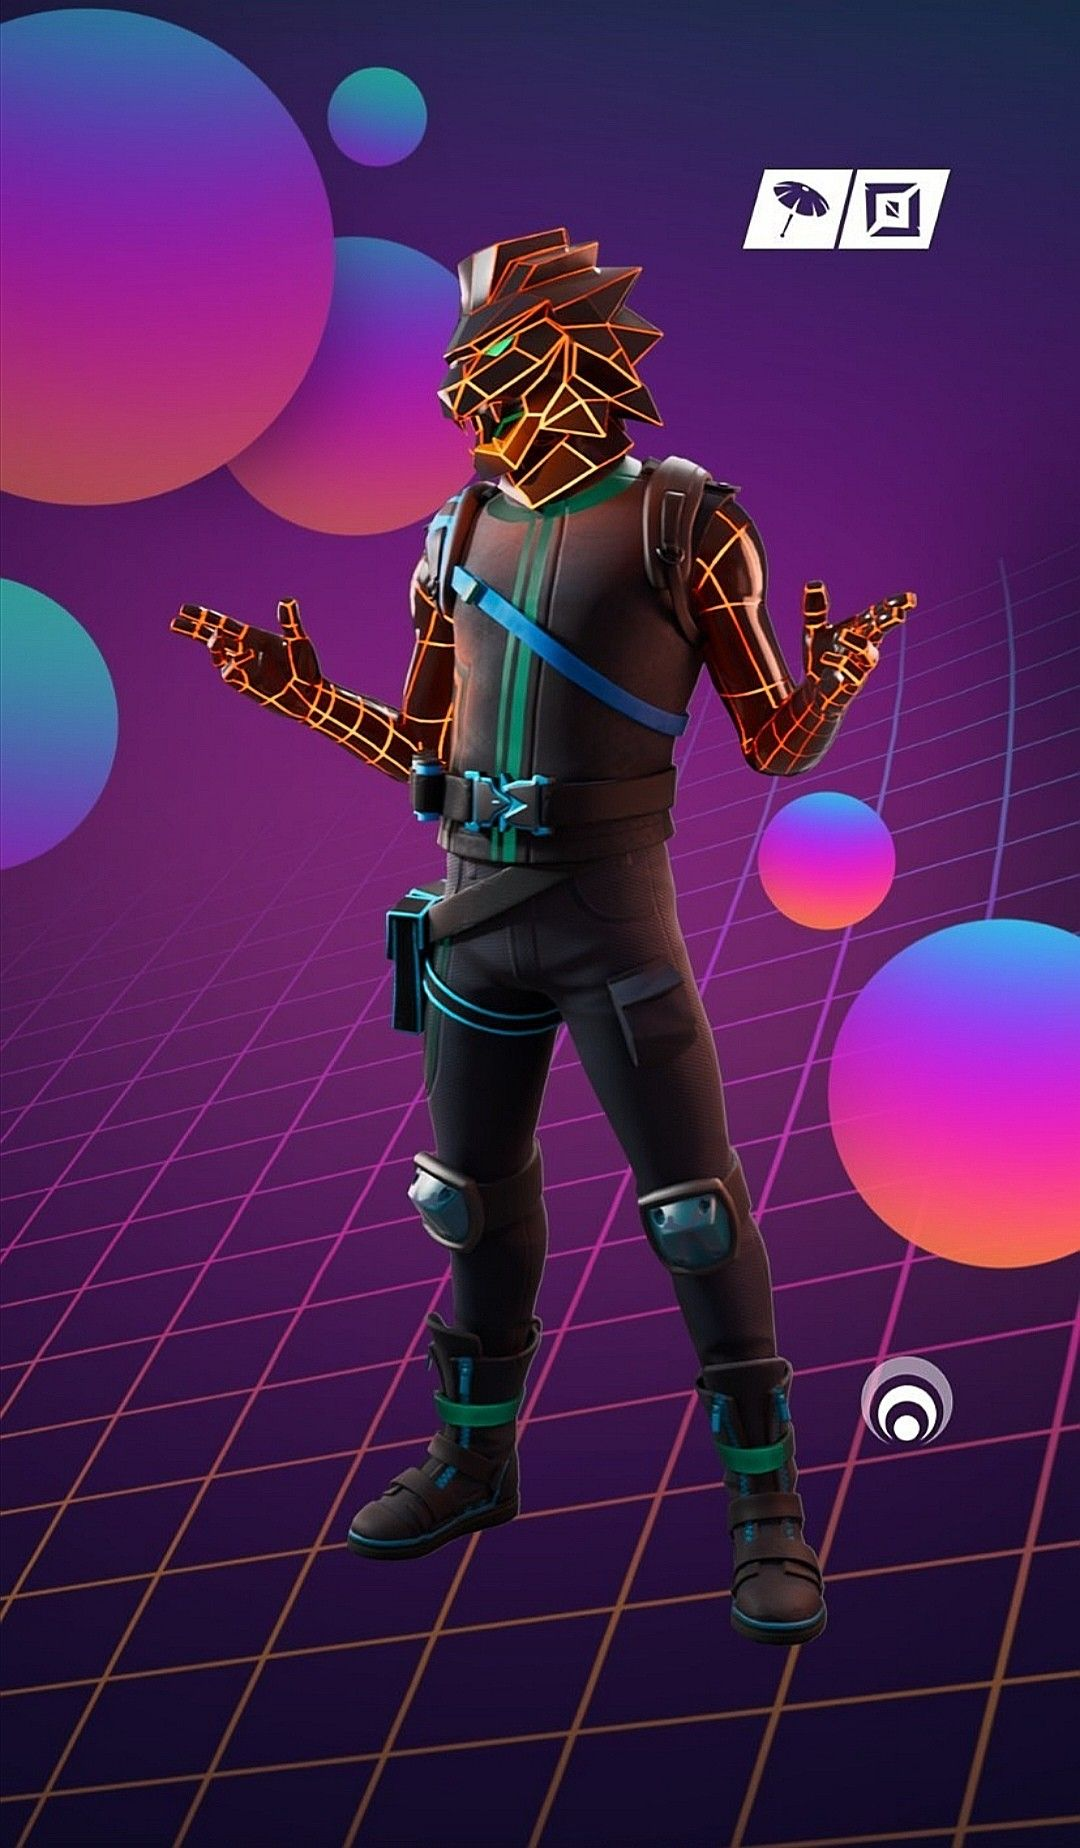 Fortnite Season 2 Chapter 2 Skins In 2020 Skin Images Epic Games Fortnite Gaming Wallpapers